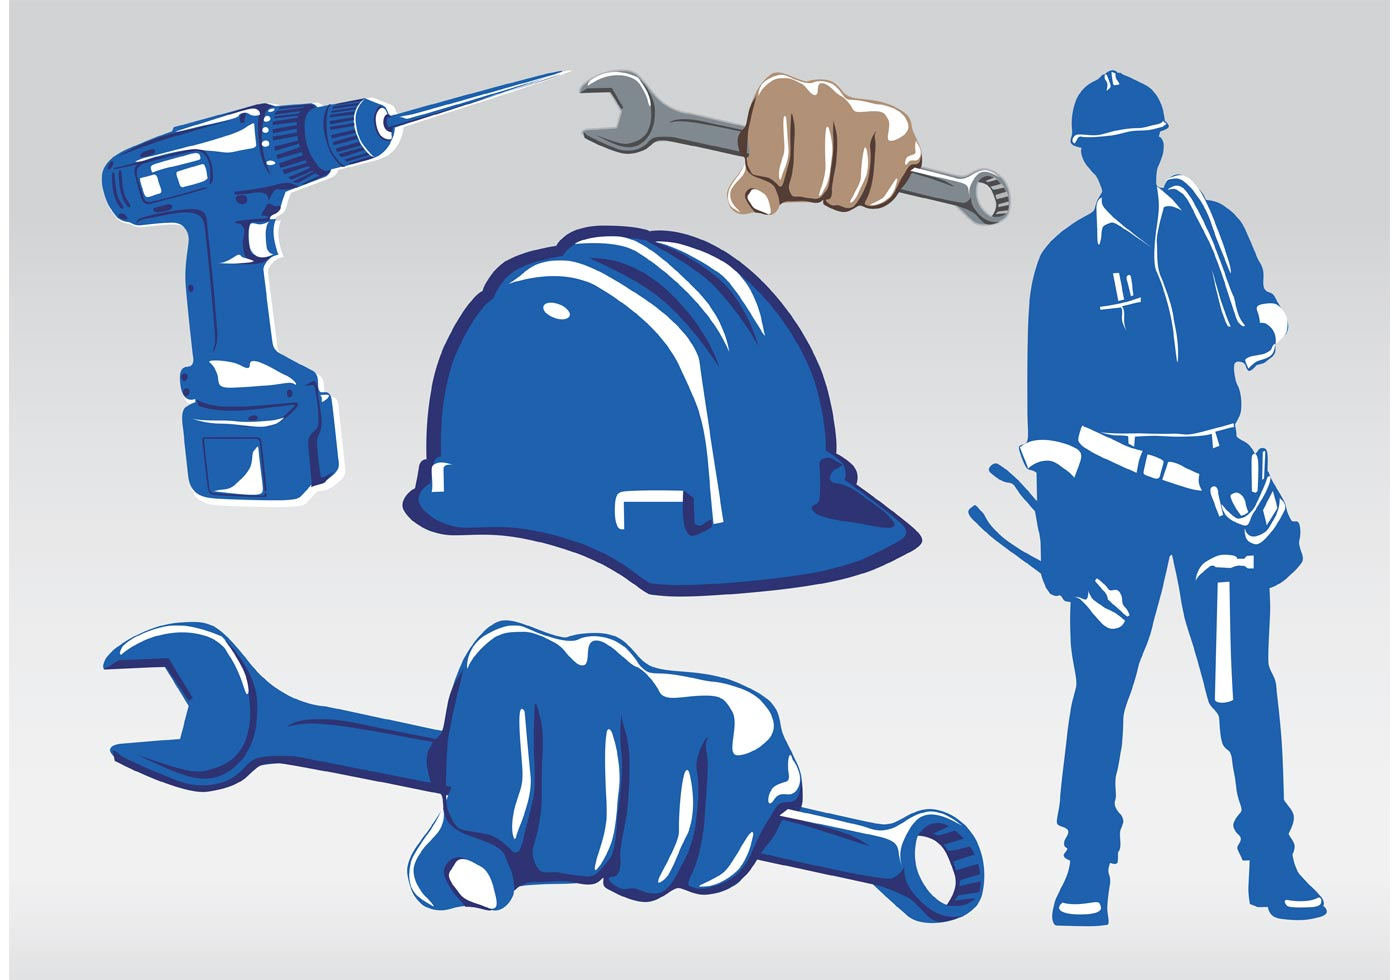 free clipart work tools - photo #17